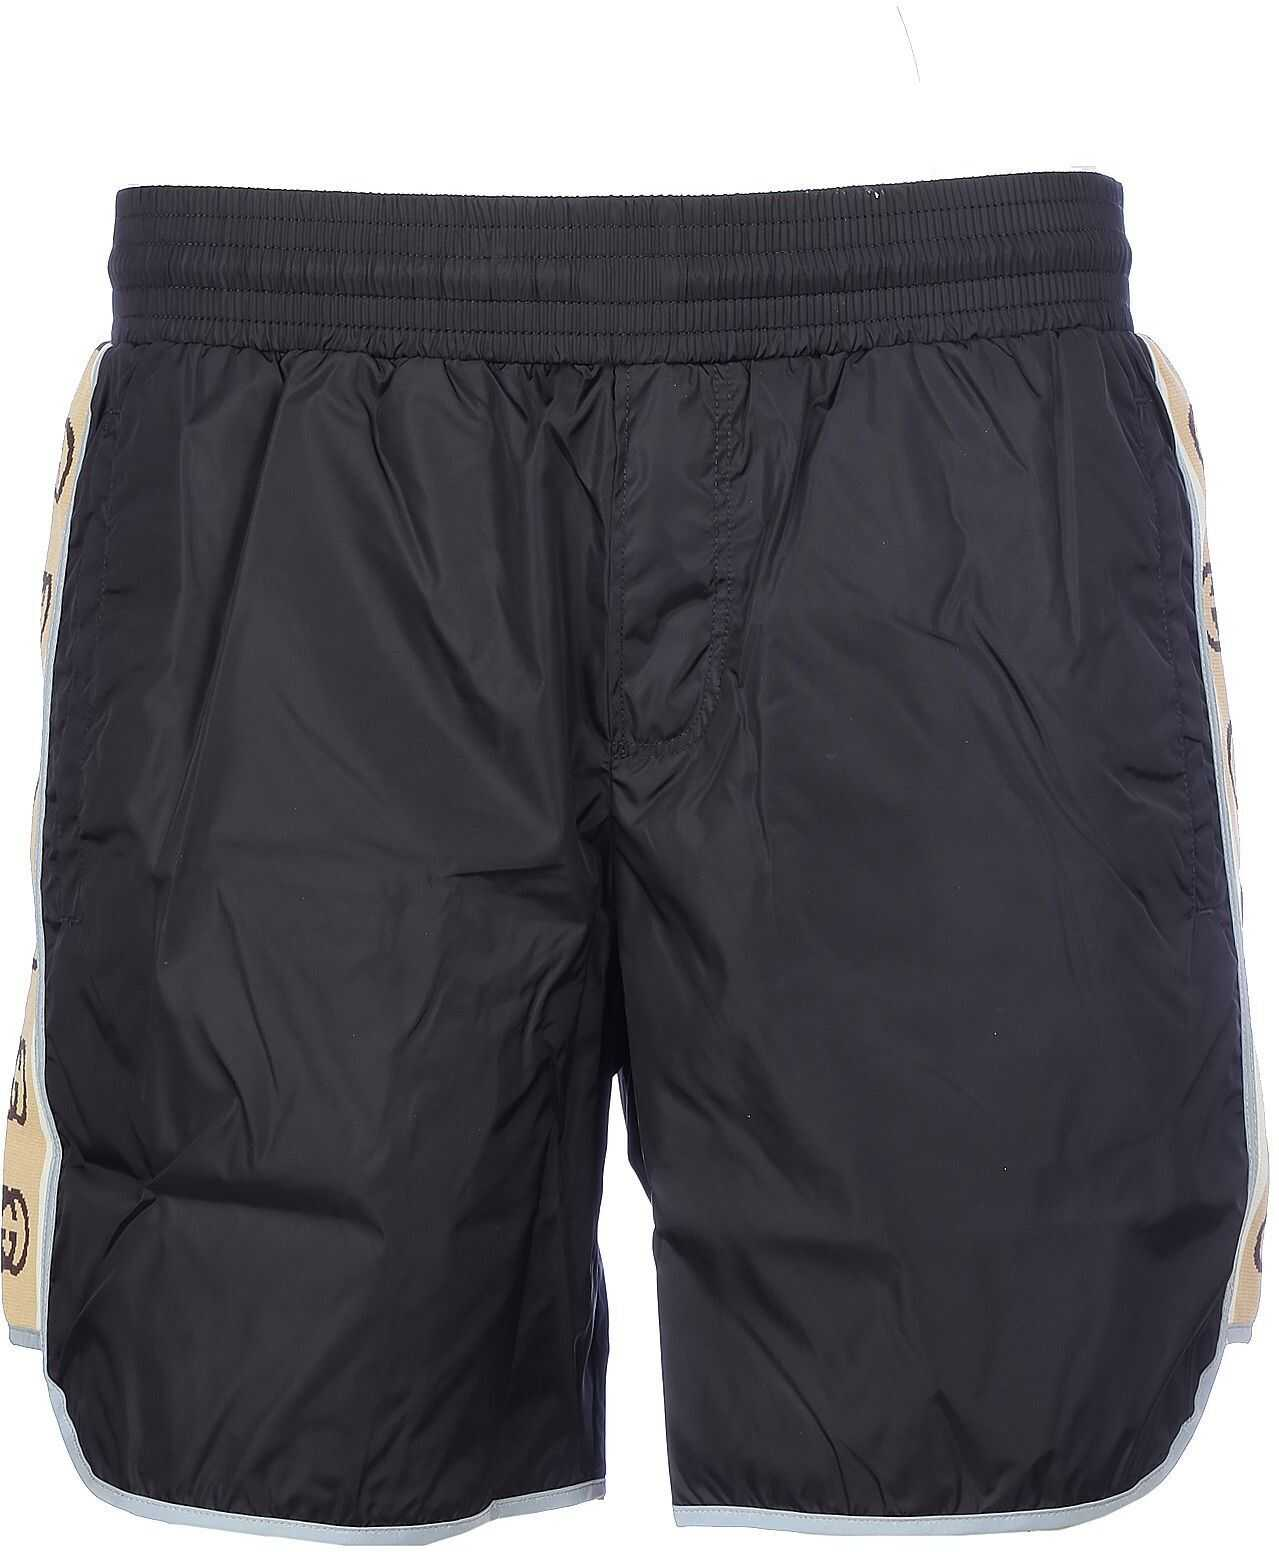 Gucci Polyester Trunks BLACK